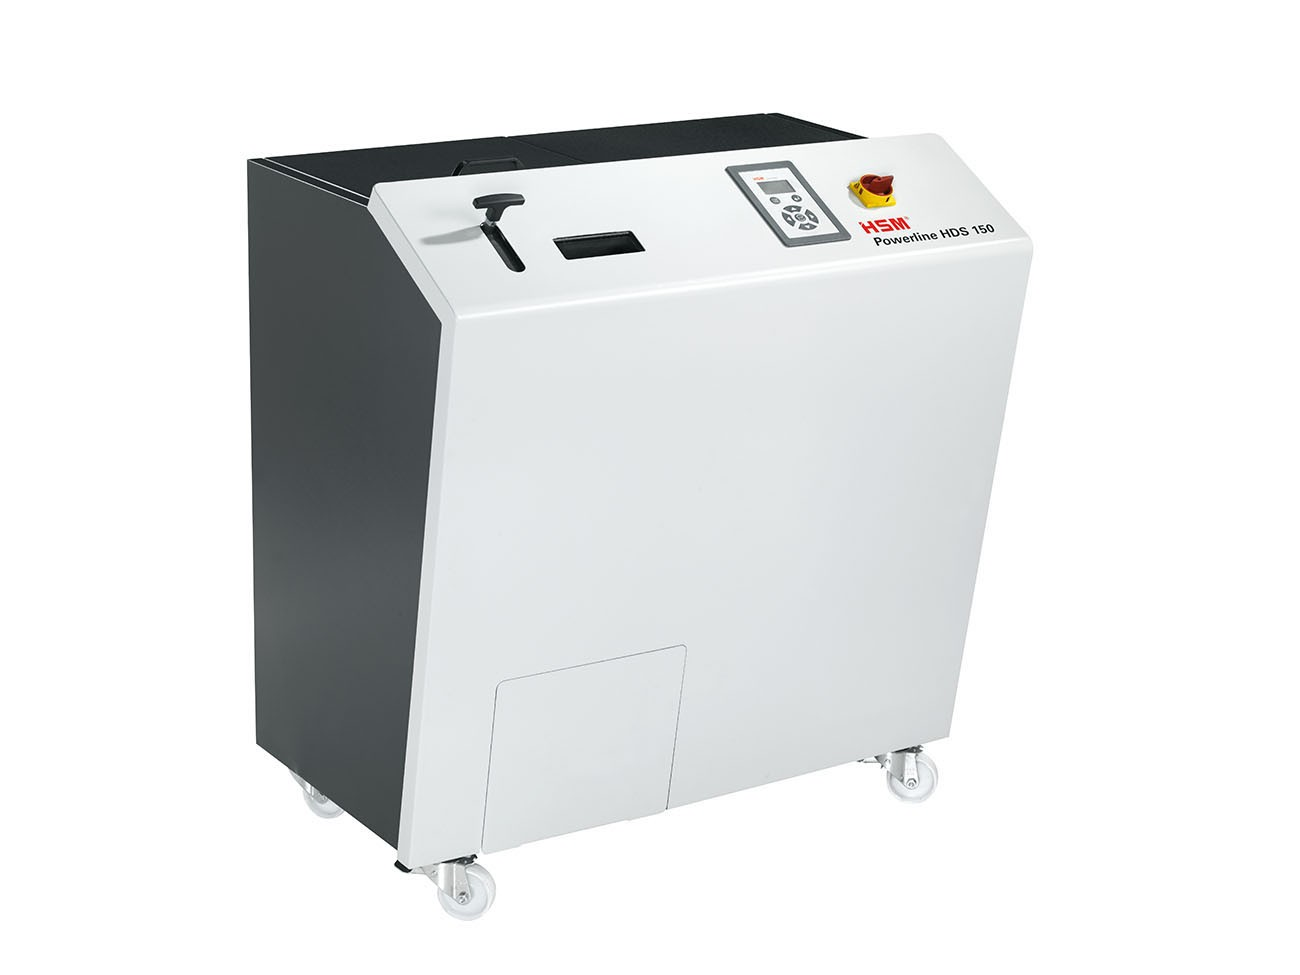 HD150 Hard Drive Shredder from HSM